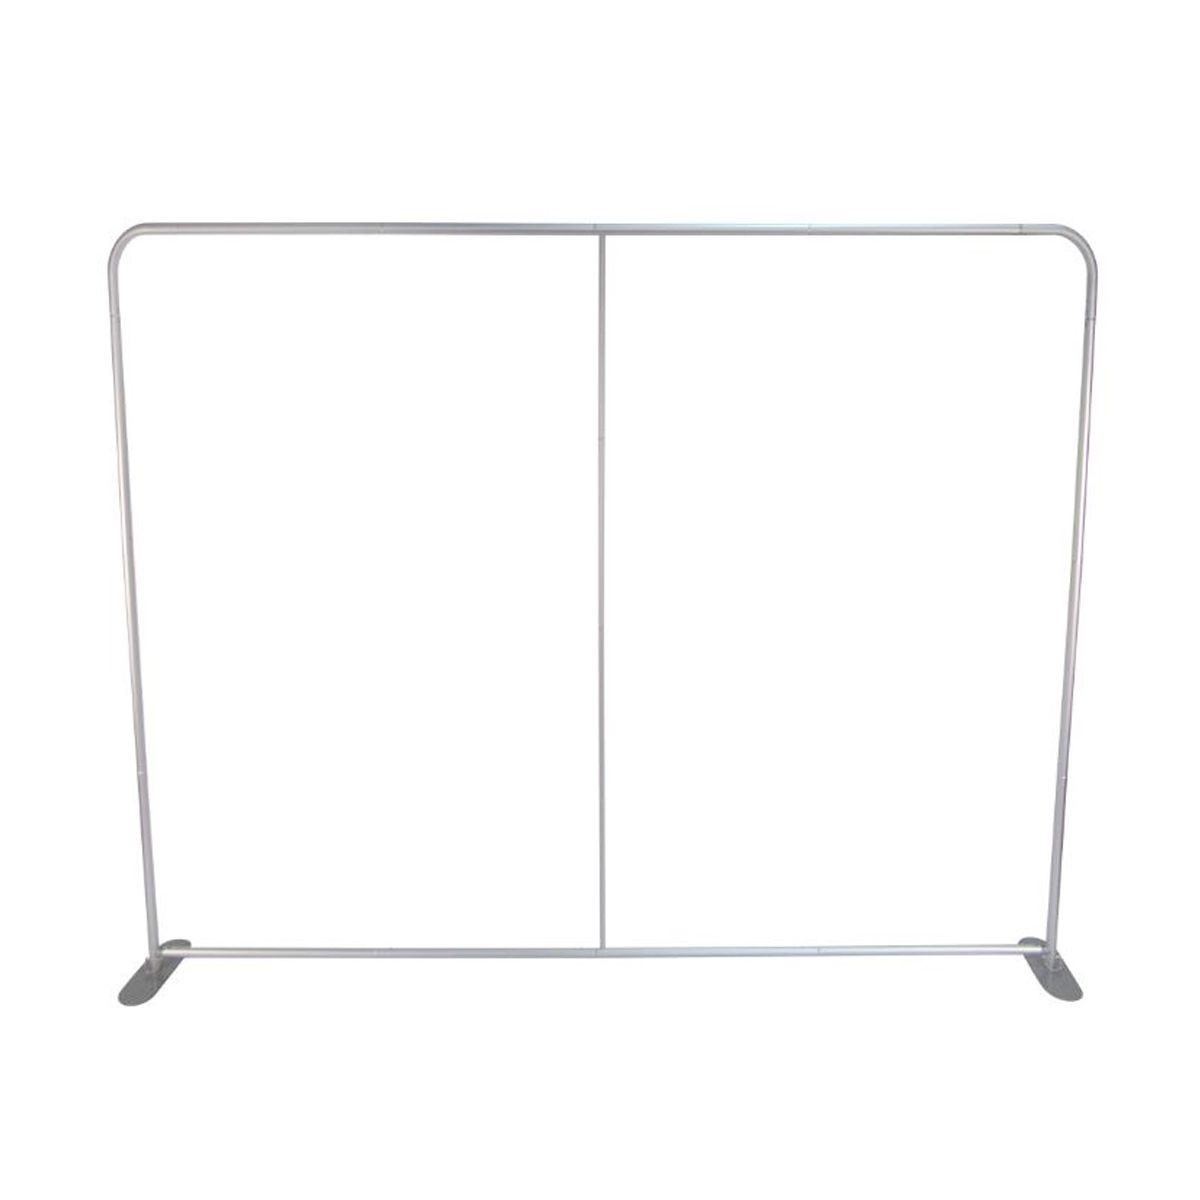 10 Foot Premium Tension Fabric Display with Footed Arch - Frame